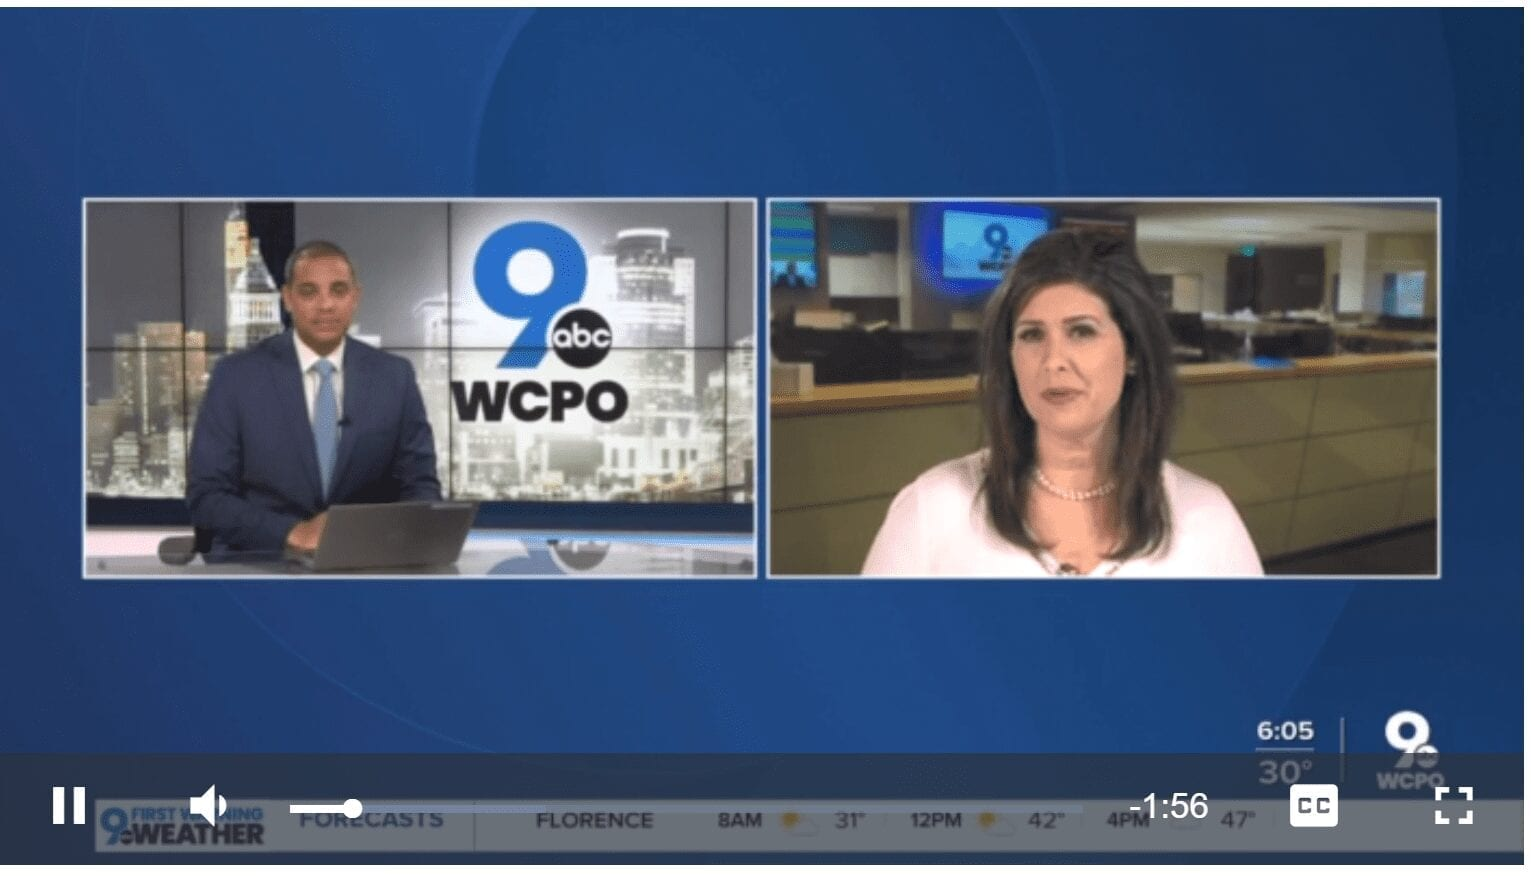 Two newscasters sit at the desk. The WCPO 9 on your side logo is superimposed on the image.